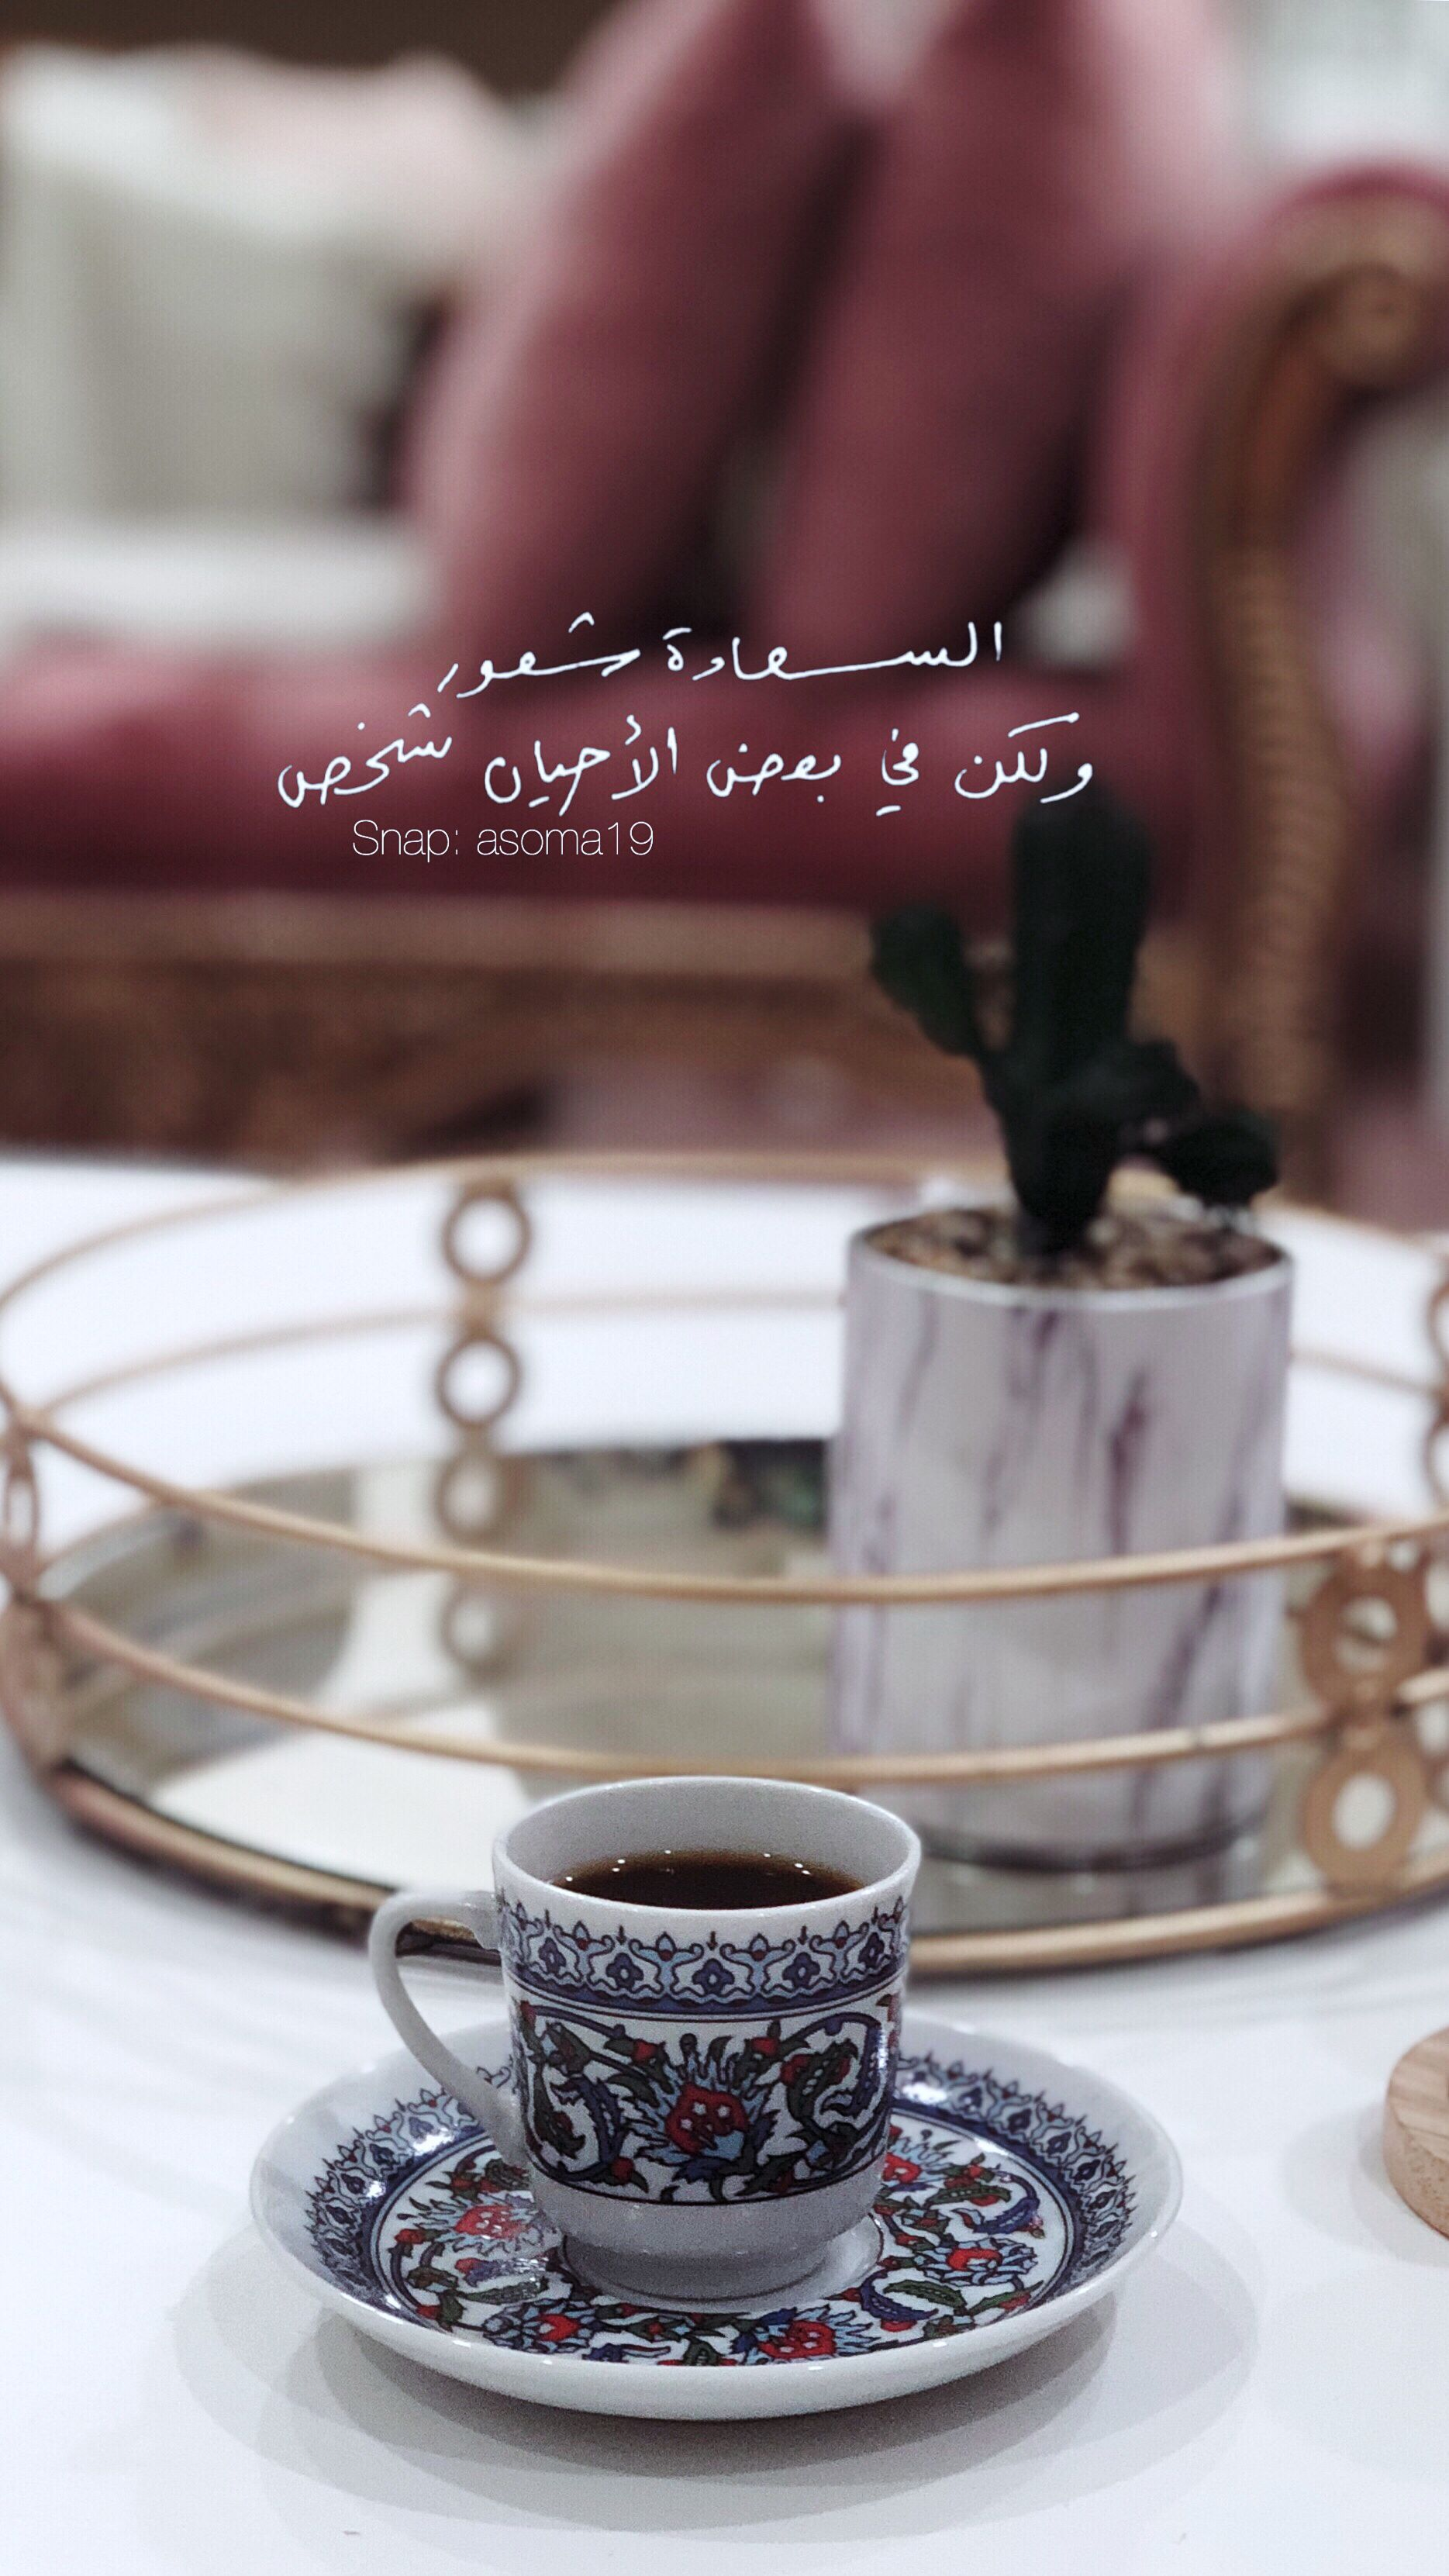 Pin By Semsem On يوميات Coffee Love Quotes Beautiful Arabic Words Photo Quotes